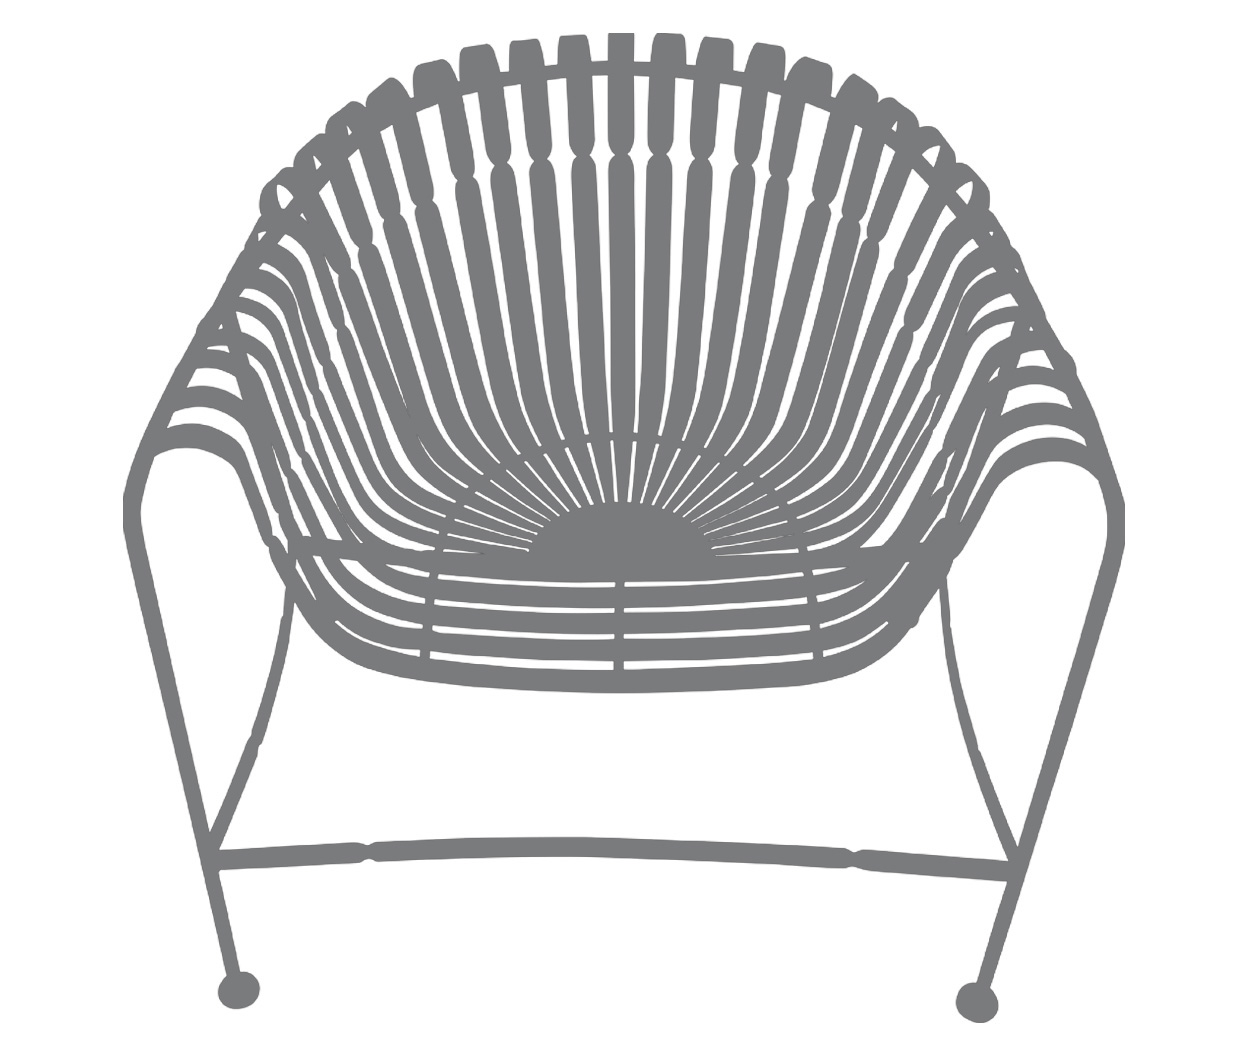 Sunburst Chair-Grey